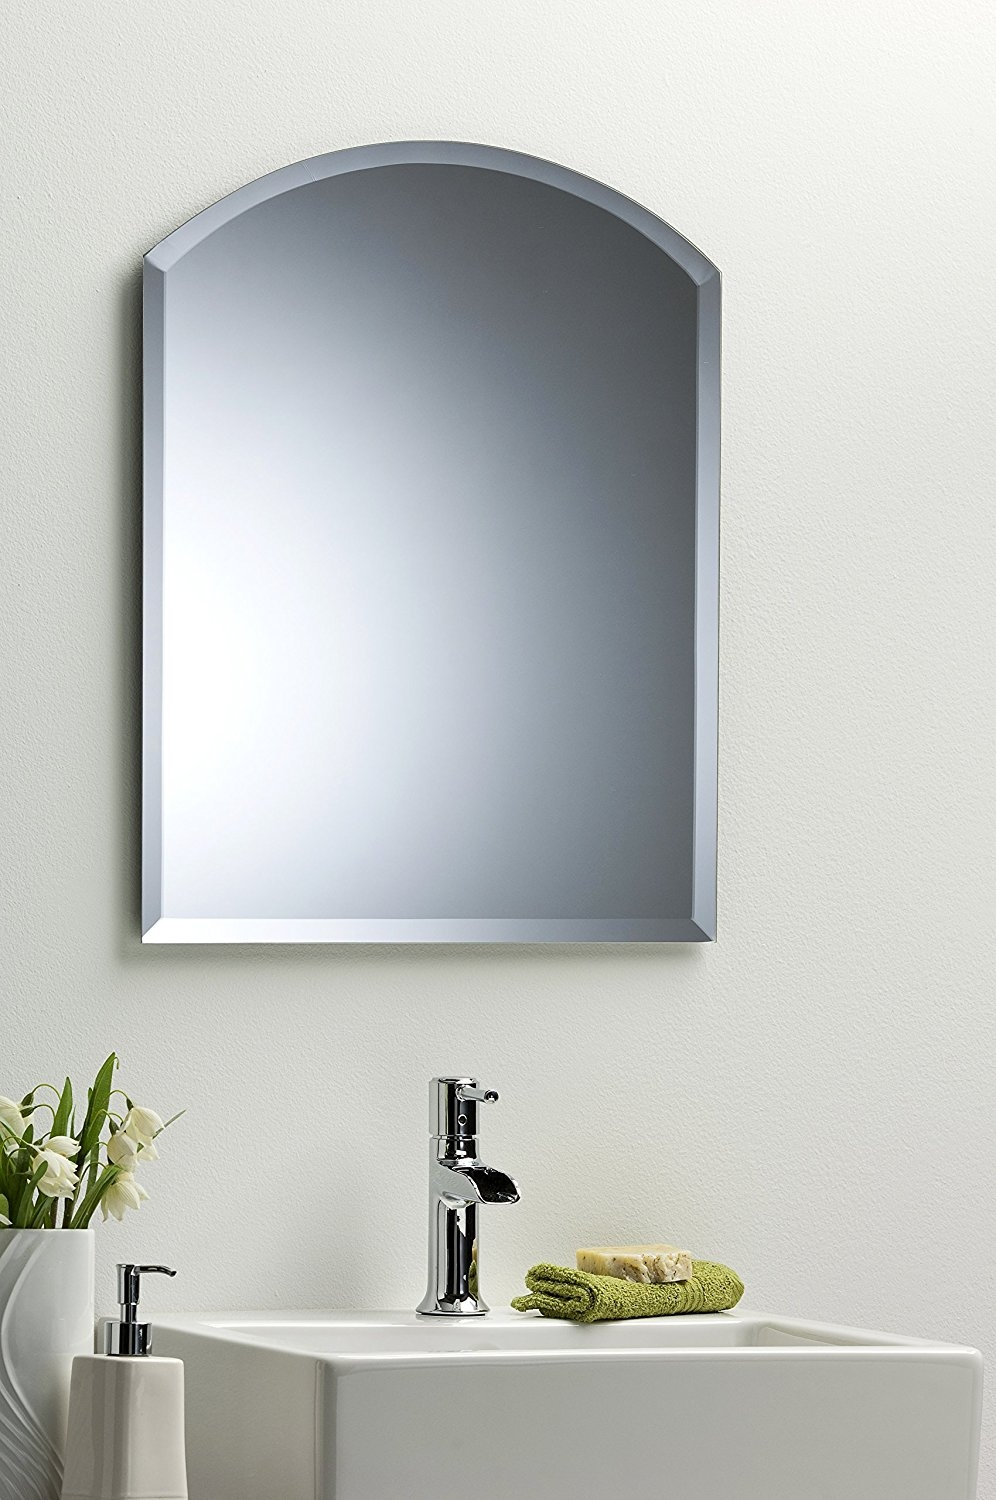 Bevelled Drilled Bathroom Mirrors